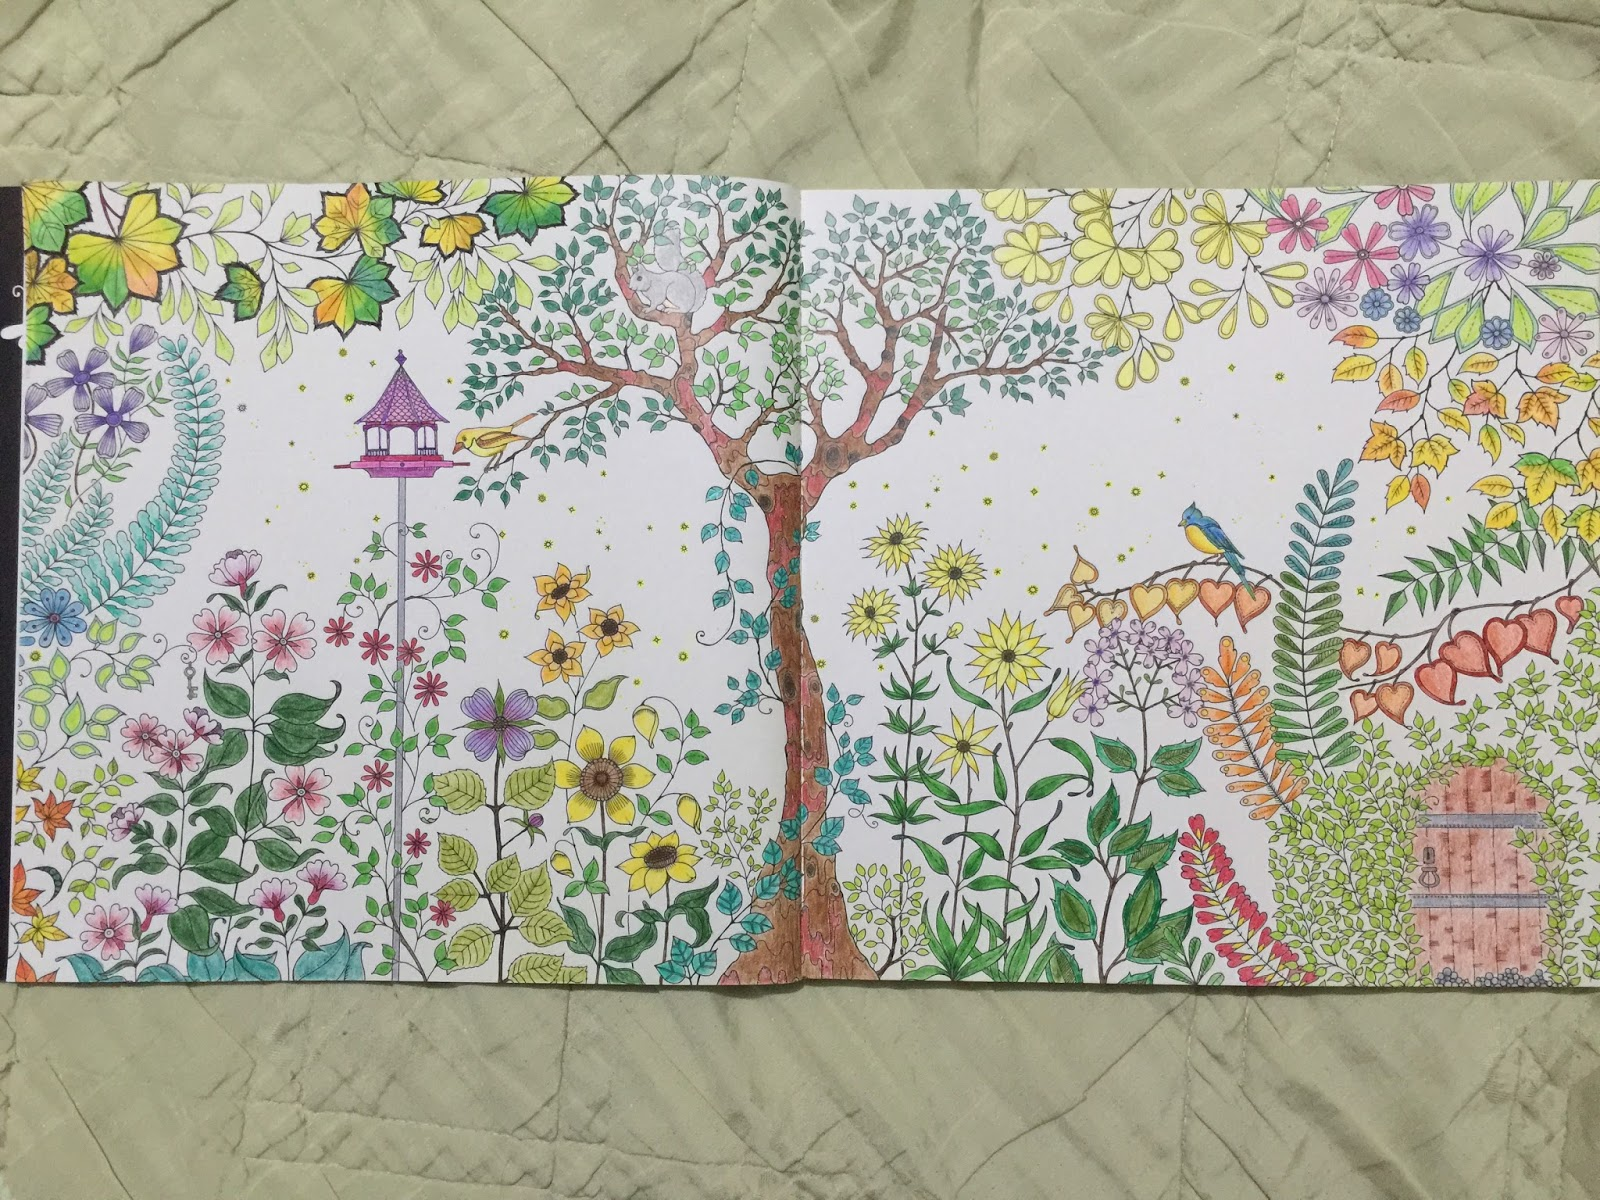 61 SECRET GARDEN COLORING BOOK INSTAGRAM, COLORING GARDEN INSTAGRAM ...